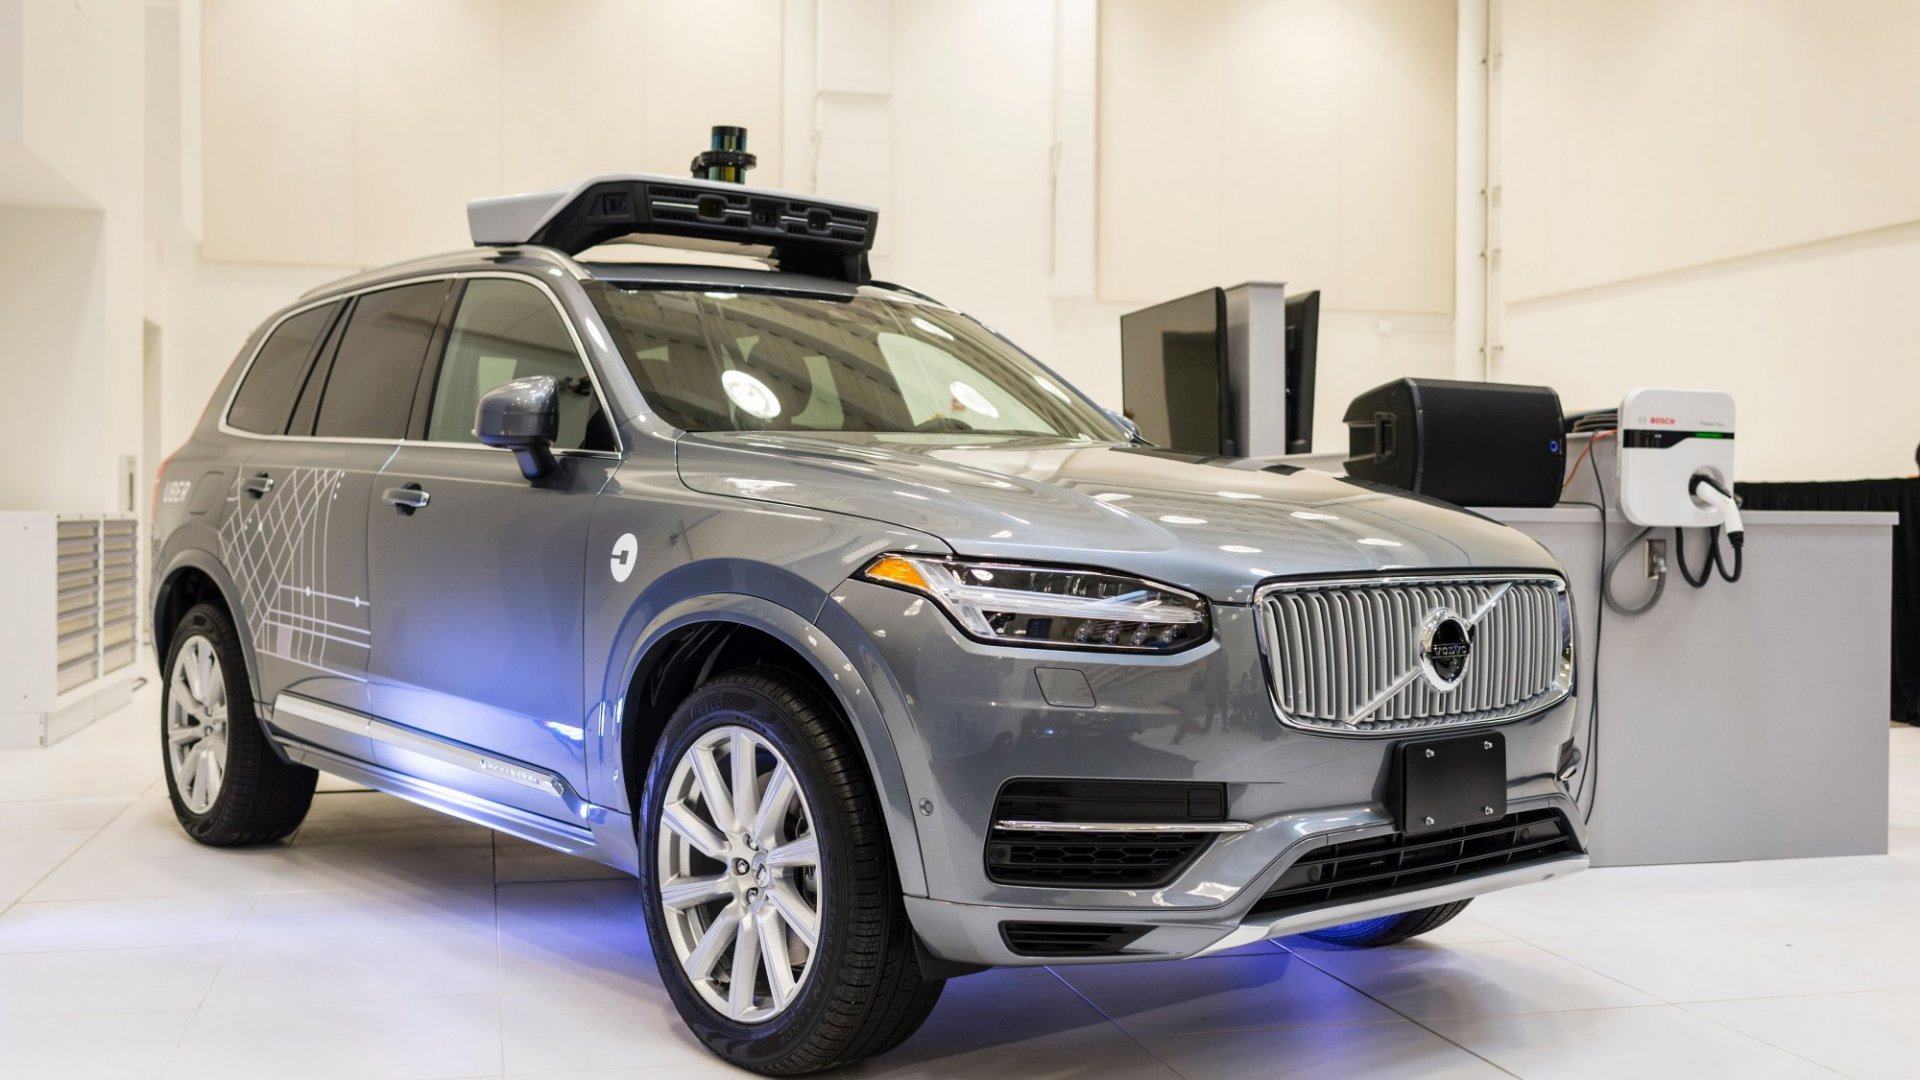 On Sunday, March 18th, an Uber Volvo XC90 in autonomous mode, with a safety driver as backup, hit and killed a 49-year-old Tempe, Arizona, woman, Elaine Herzberg. The NTSB is investigating.